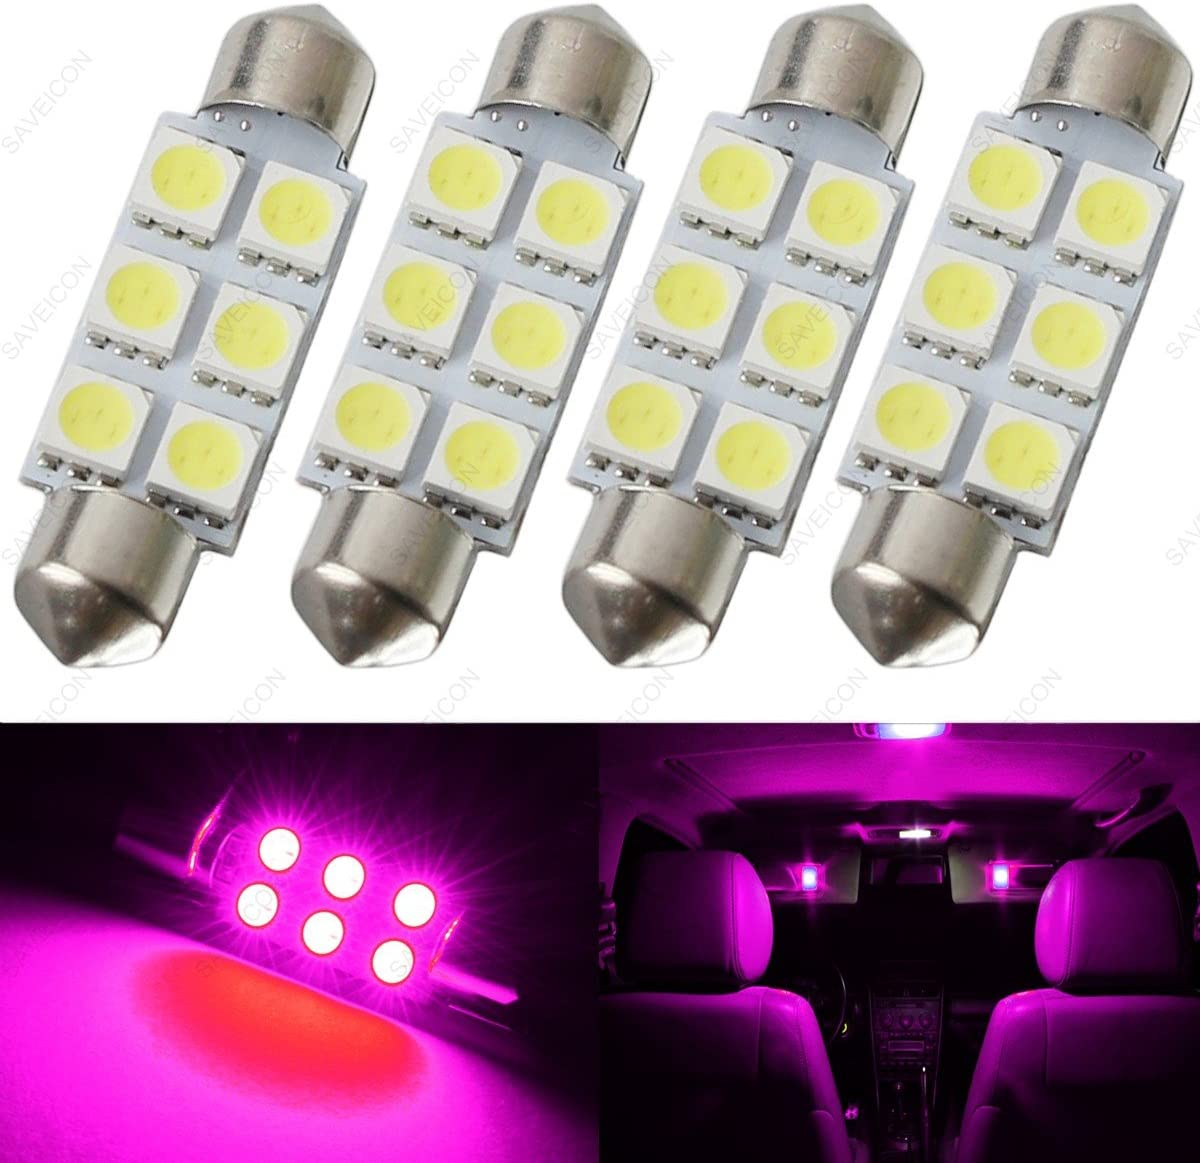 SAWE - 44MM 6-SMD 5050 Festoon Dome Map Interior LED Light Bulbs Lamp For 6411 578 211-2 212-2 (4 pieces) (Pink/Purple)